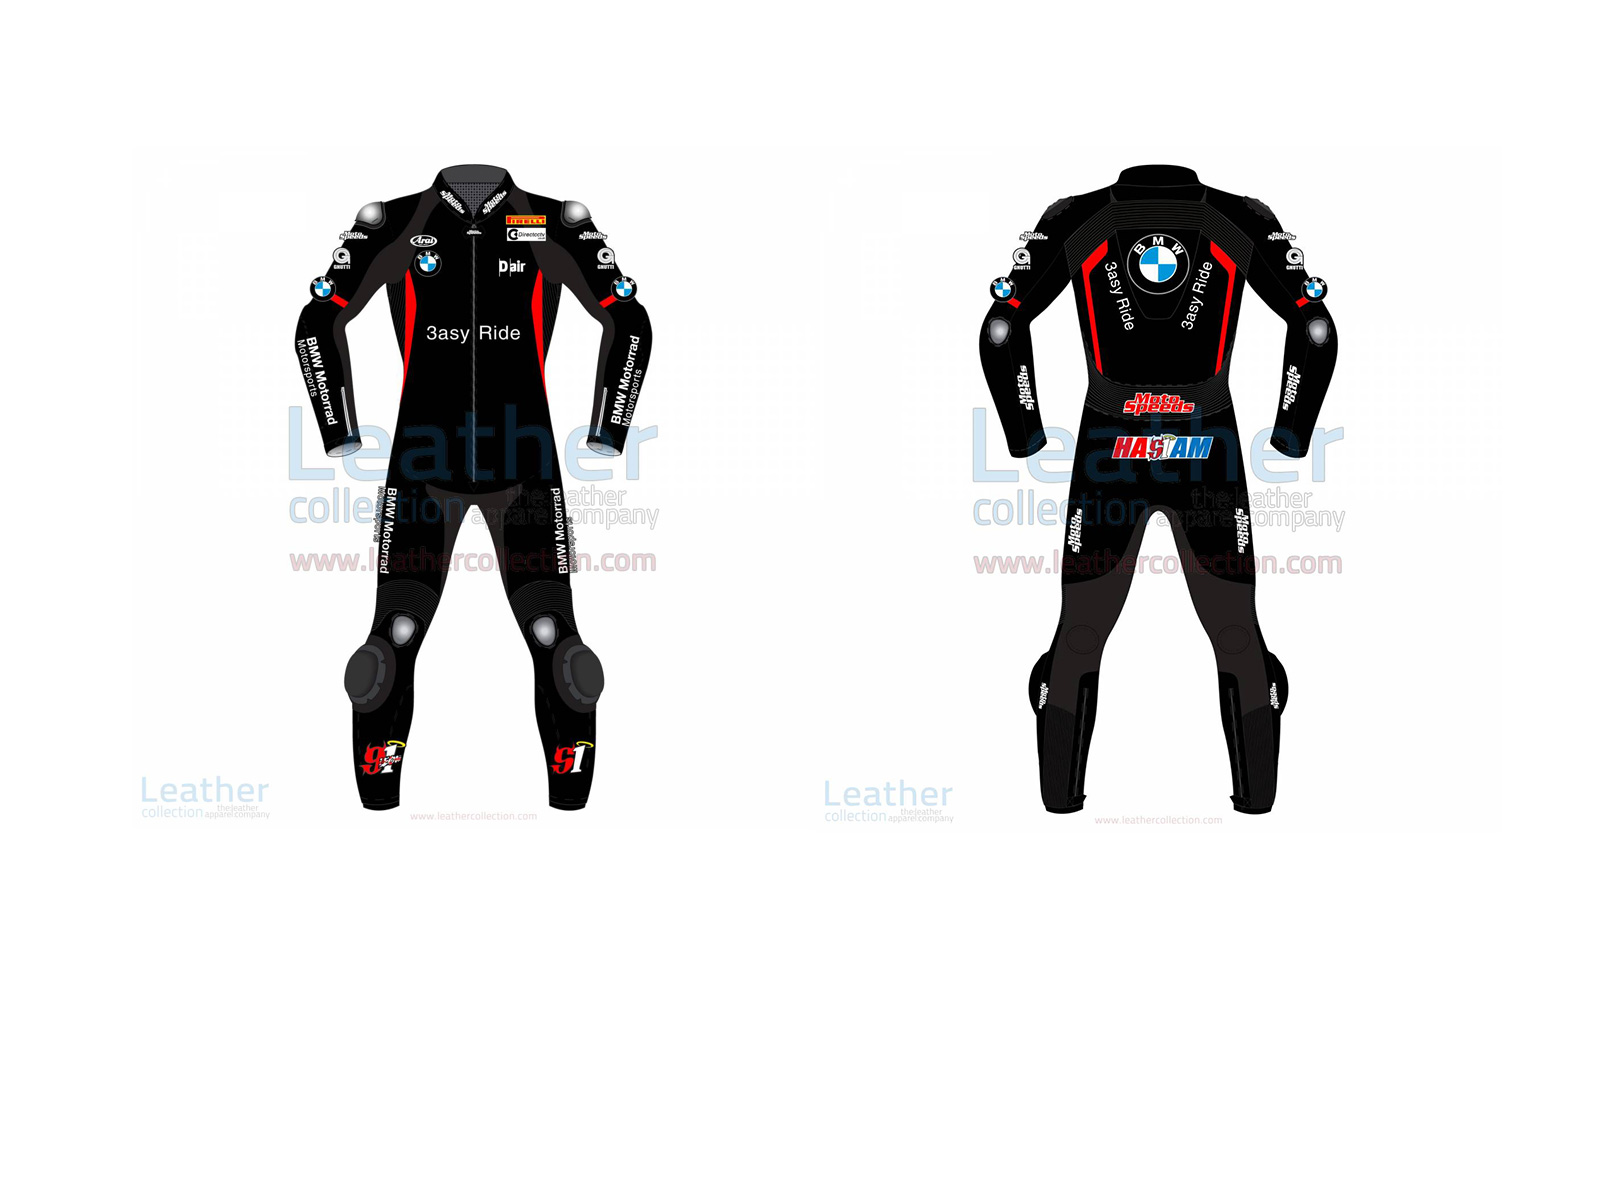 LEON HASLAM BMW WSBK 2011 LEATHER SUIT